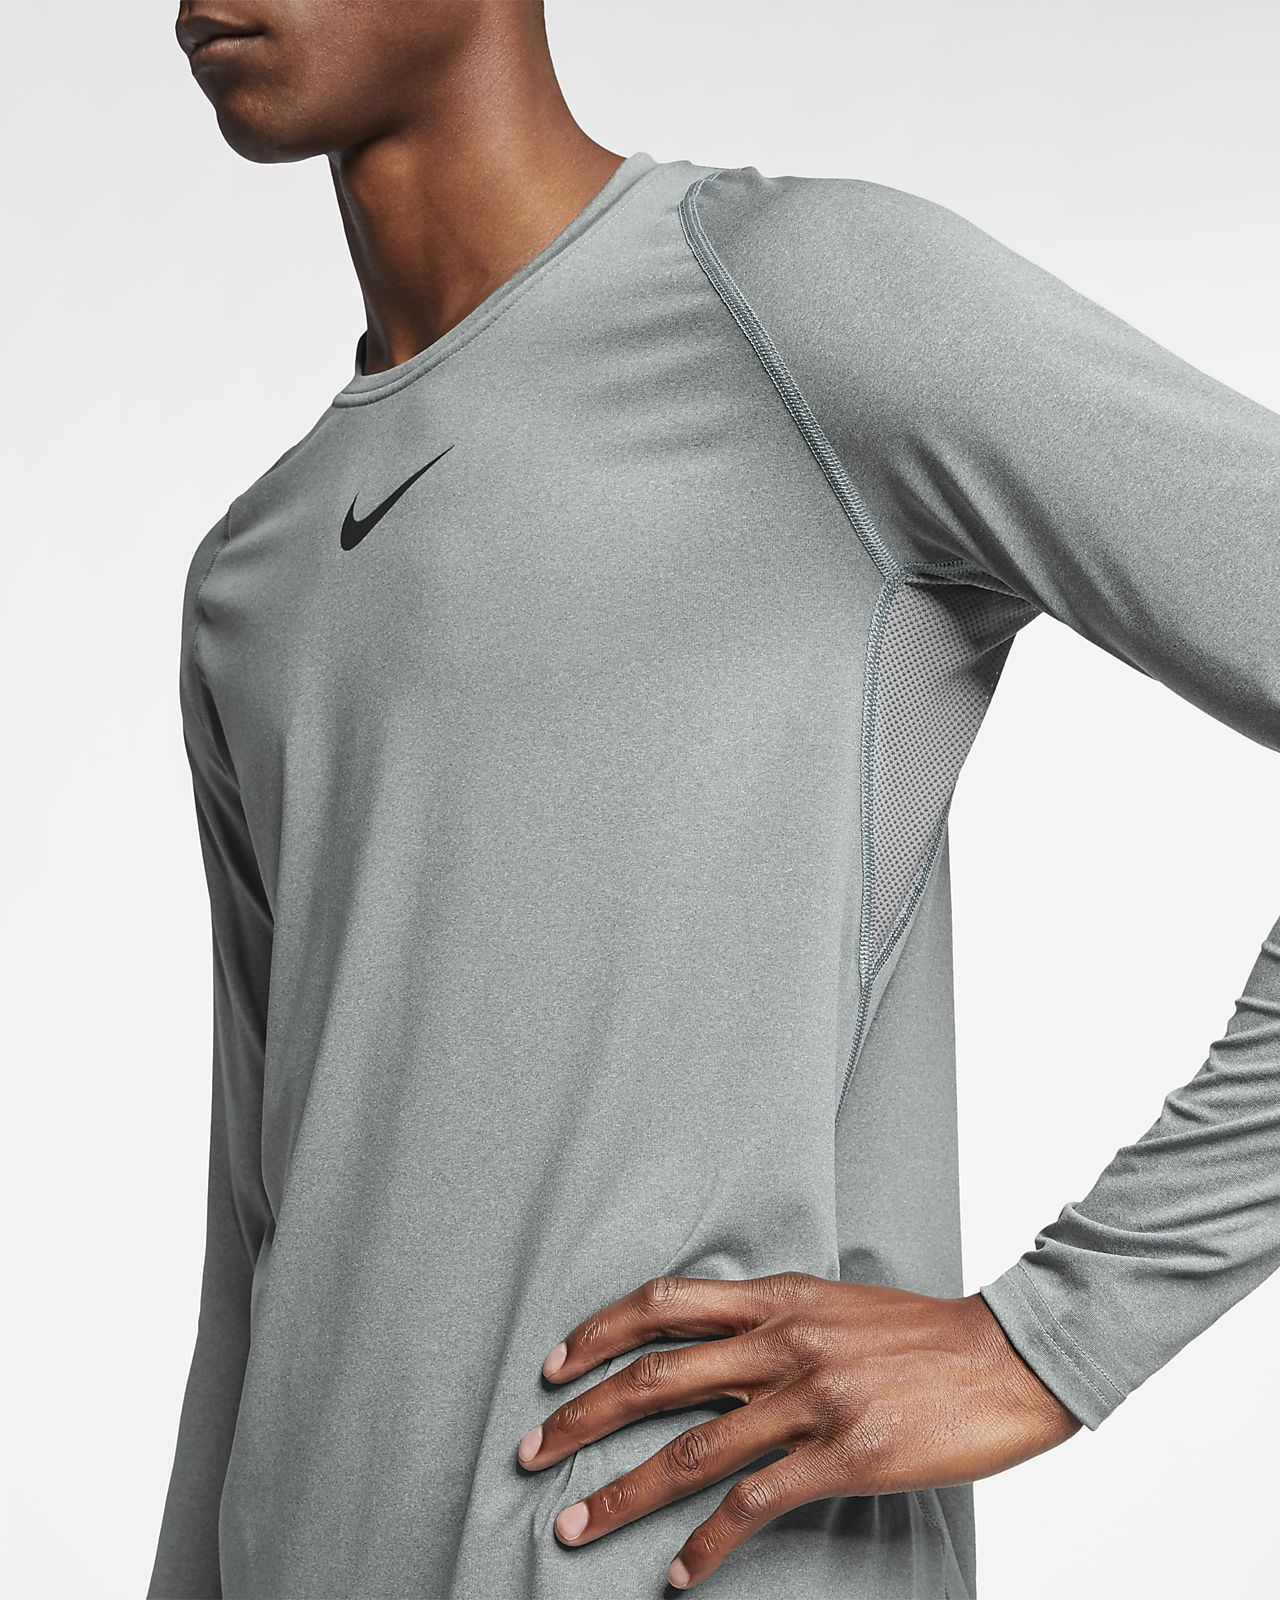 c3377f9bc236 Nike Pro Men s Long-Sleeve Fitted Top. Nike.com